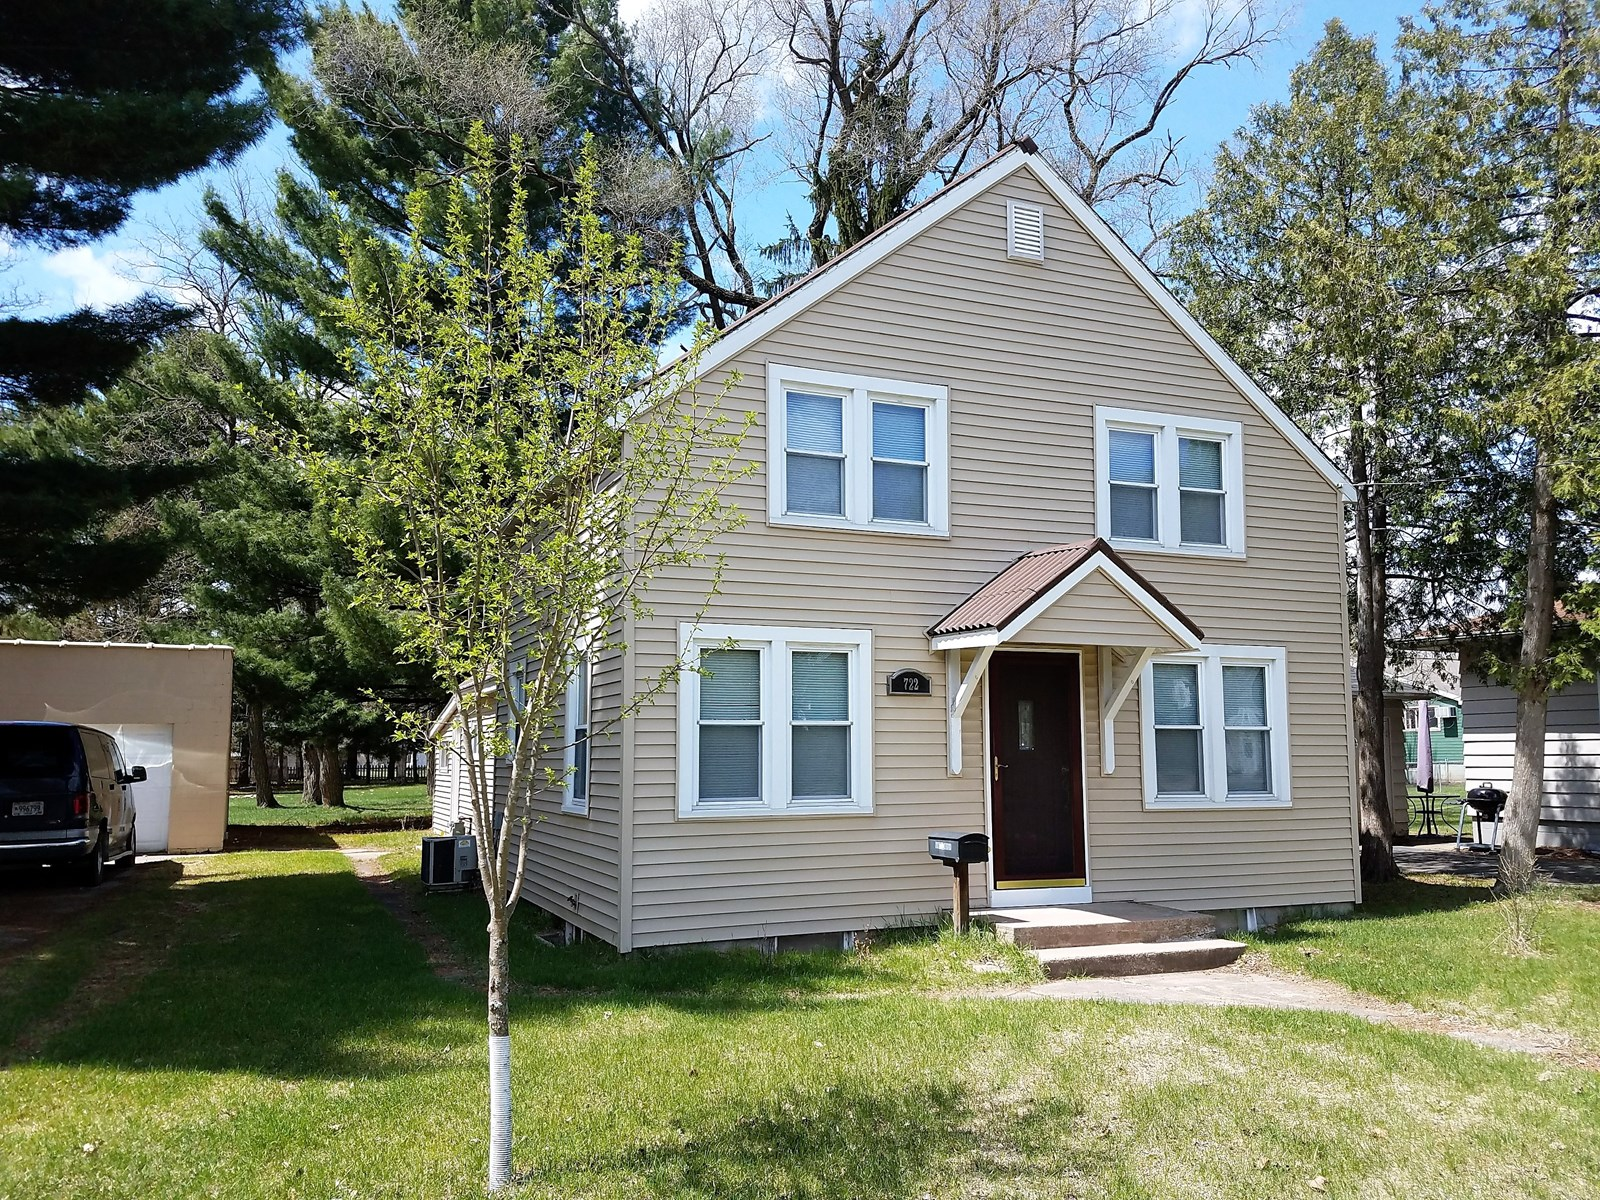 Home for Sale in the Heart of  Waupaca WI